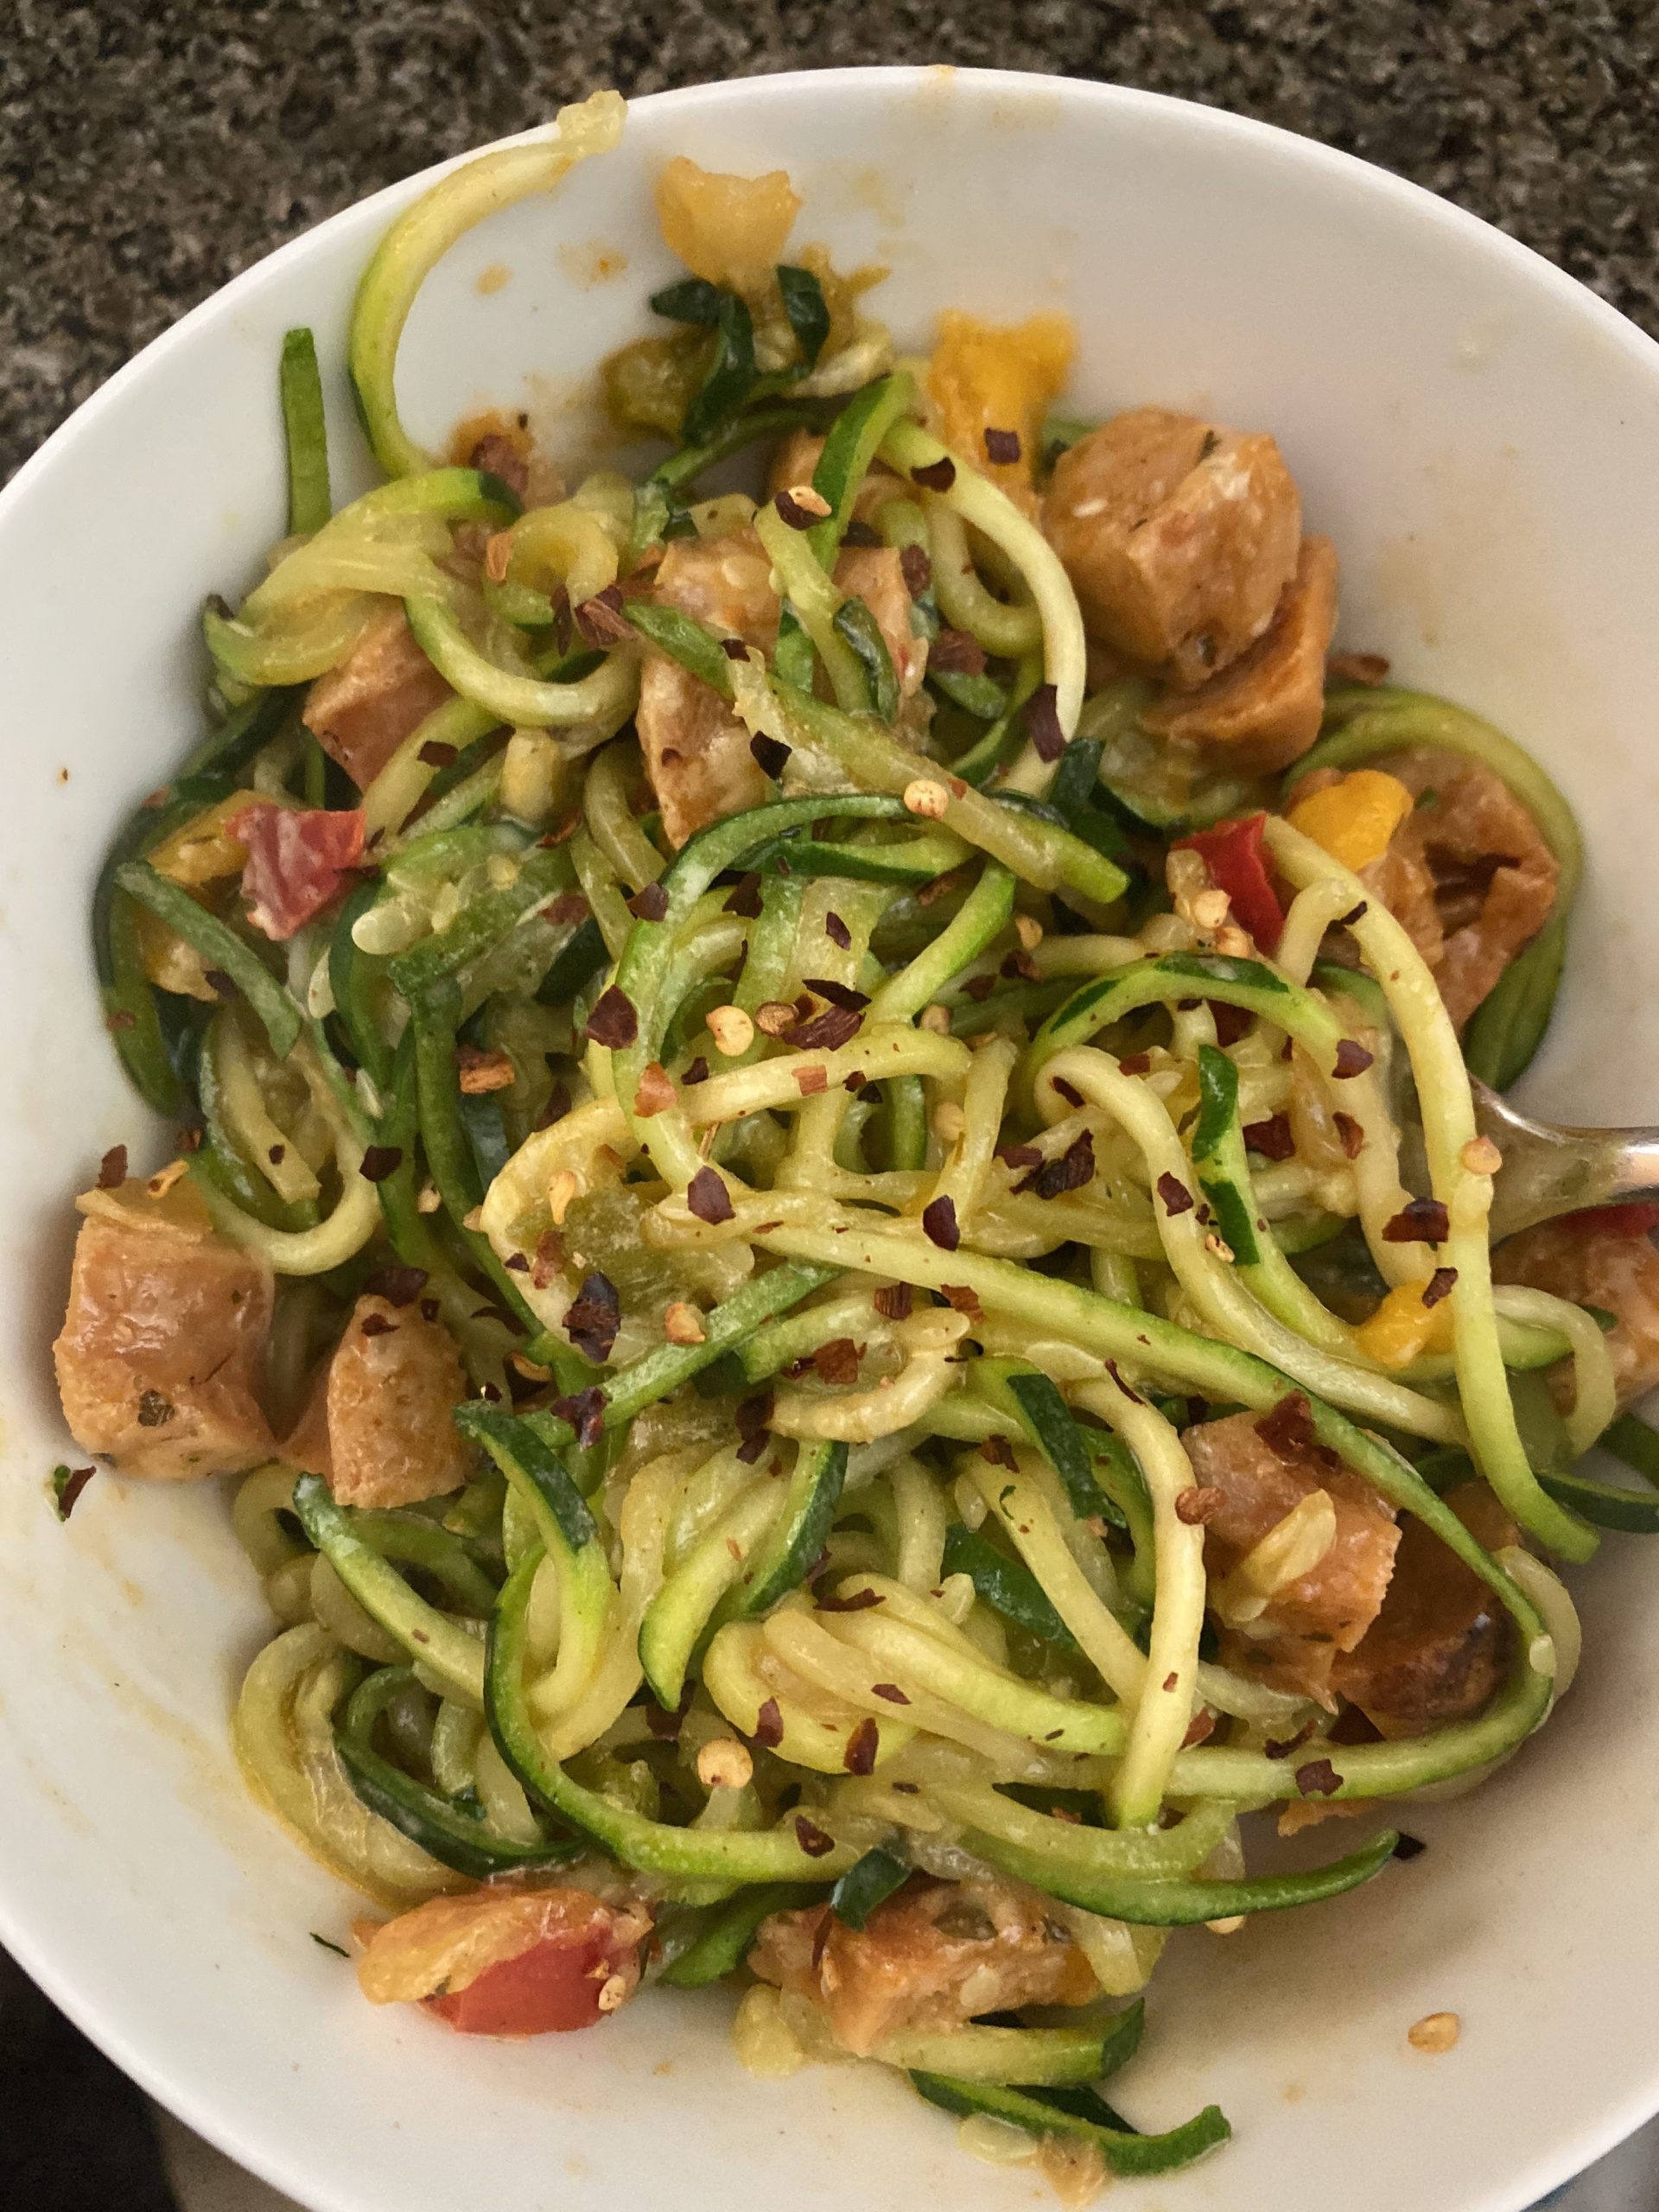 Zucchini Noodles and Chicken Sausage